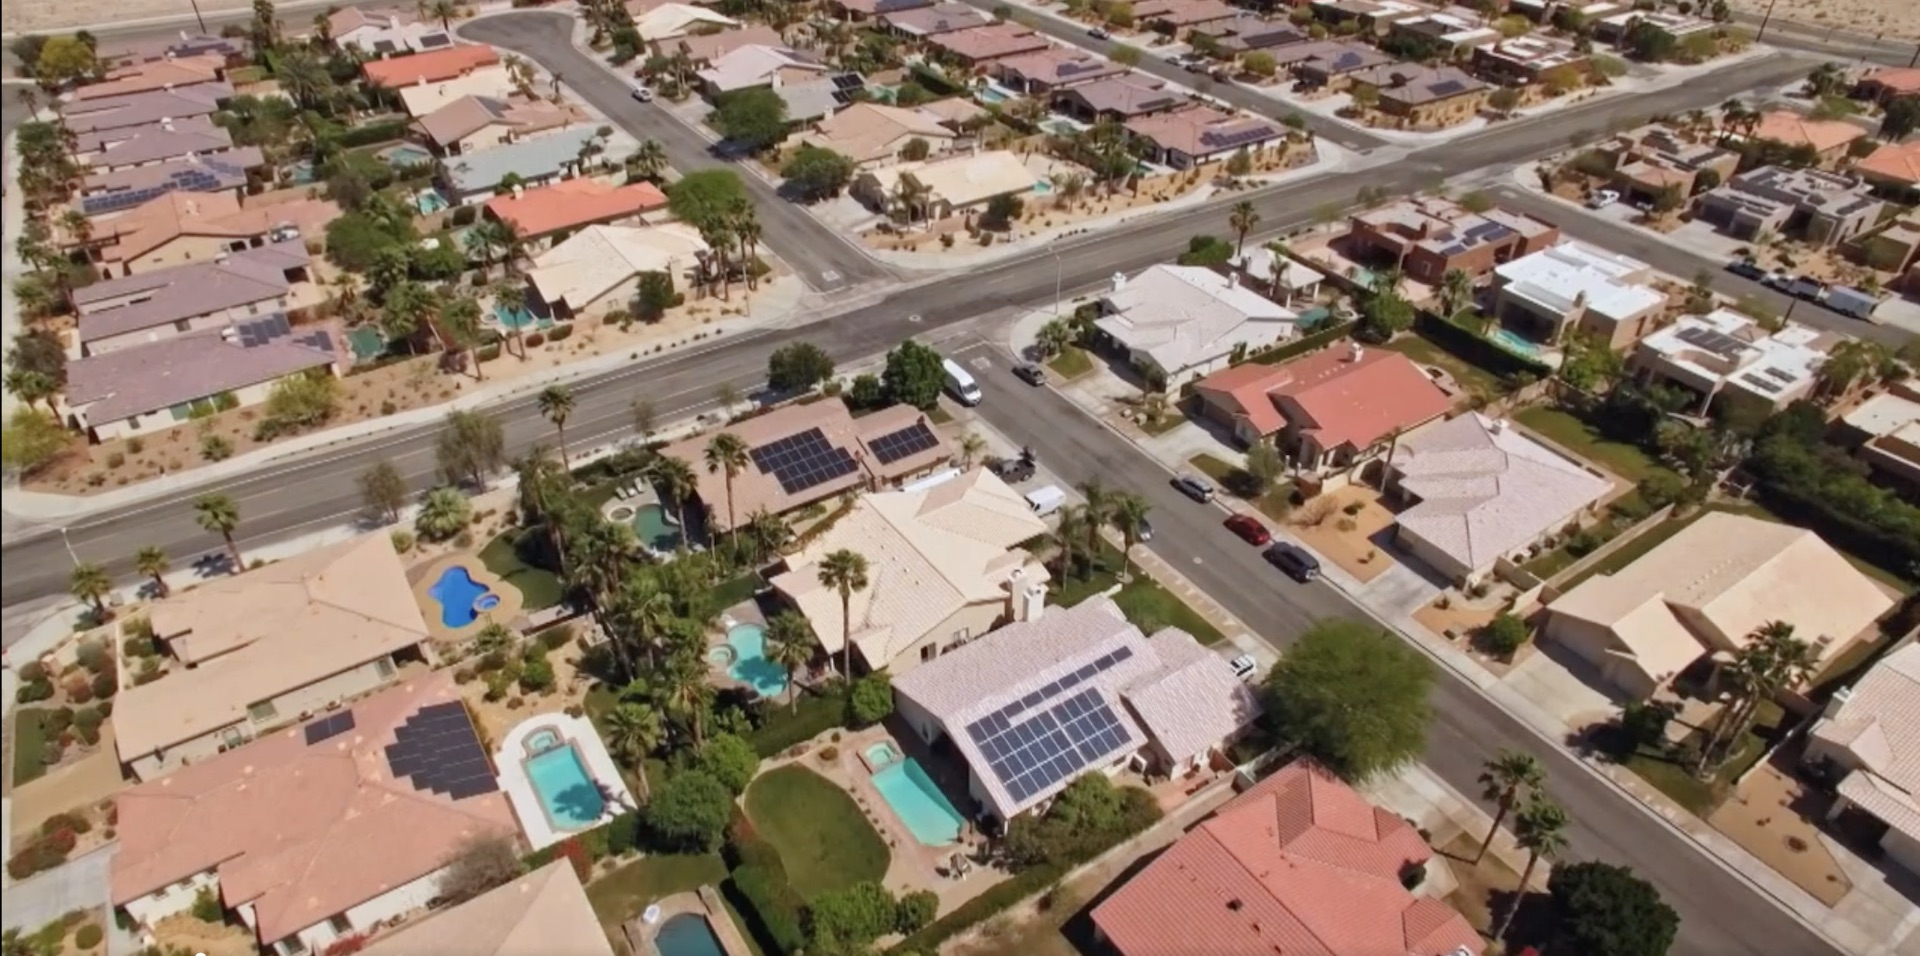 overhead shot of las vegas homes with solar paneled roofs, from Power Trip